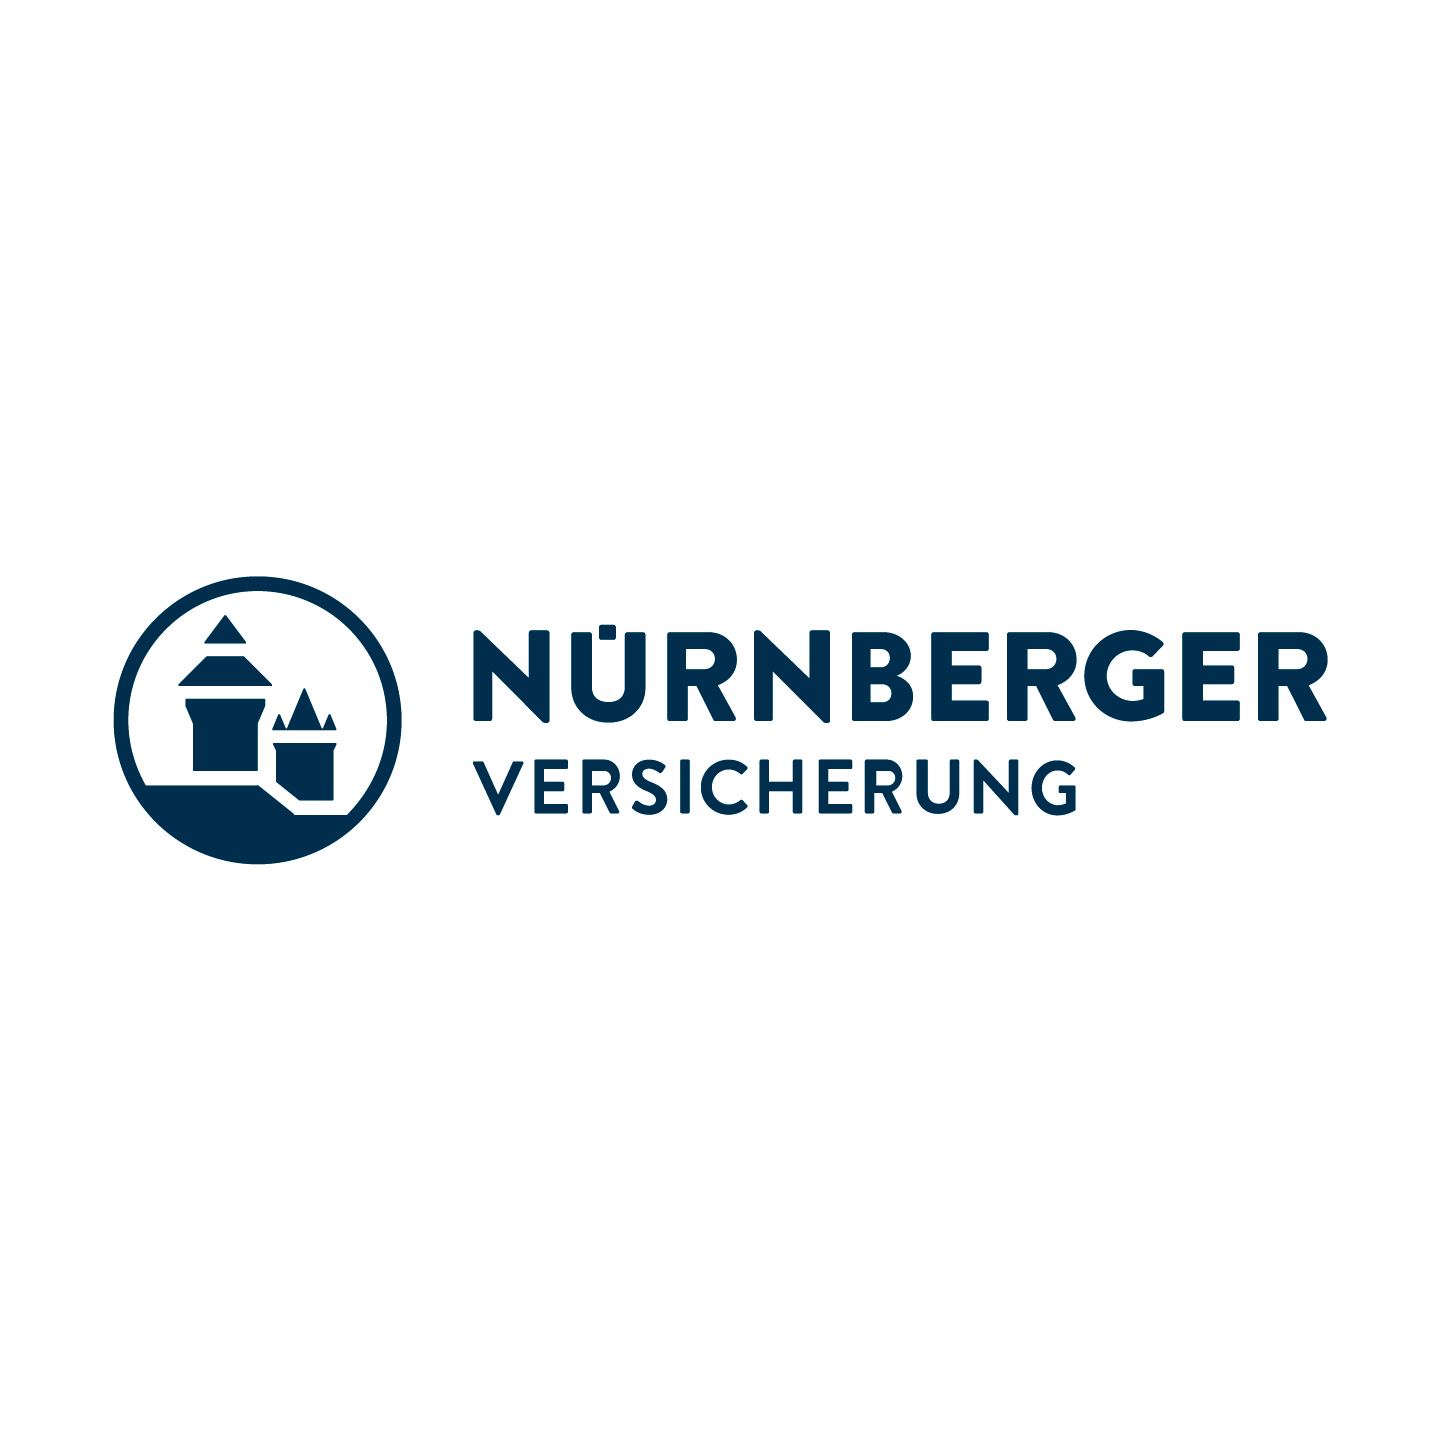 NÜRNBERGER Versicherung - Damian Kottucz Düsseldorf